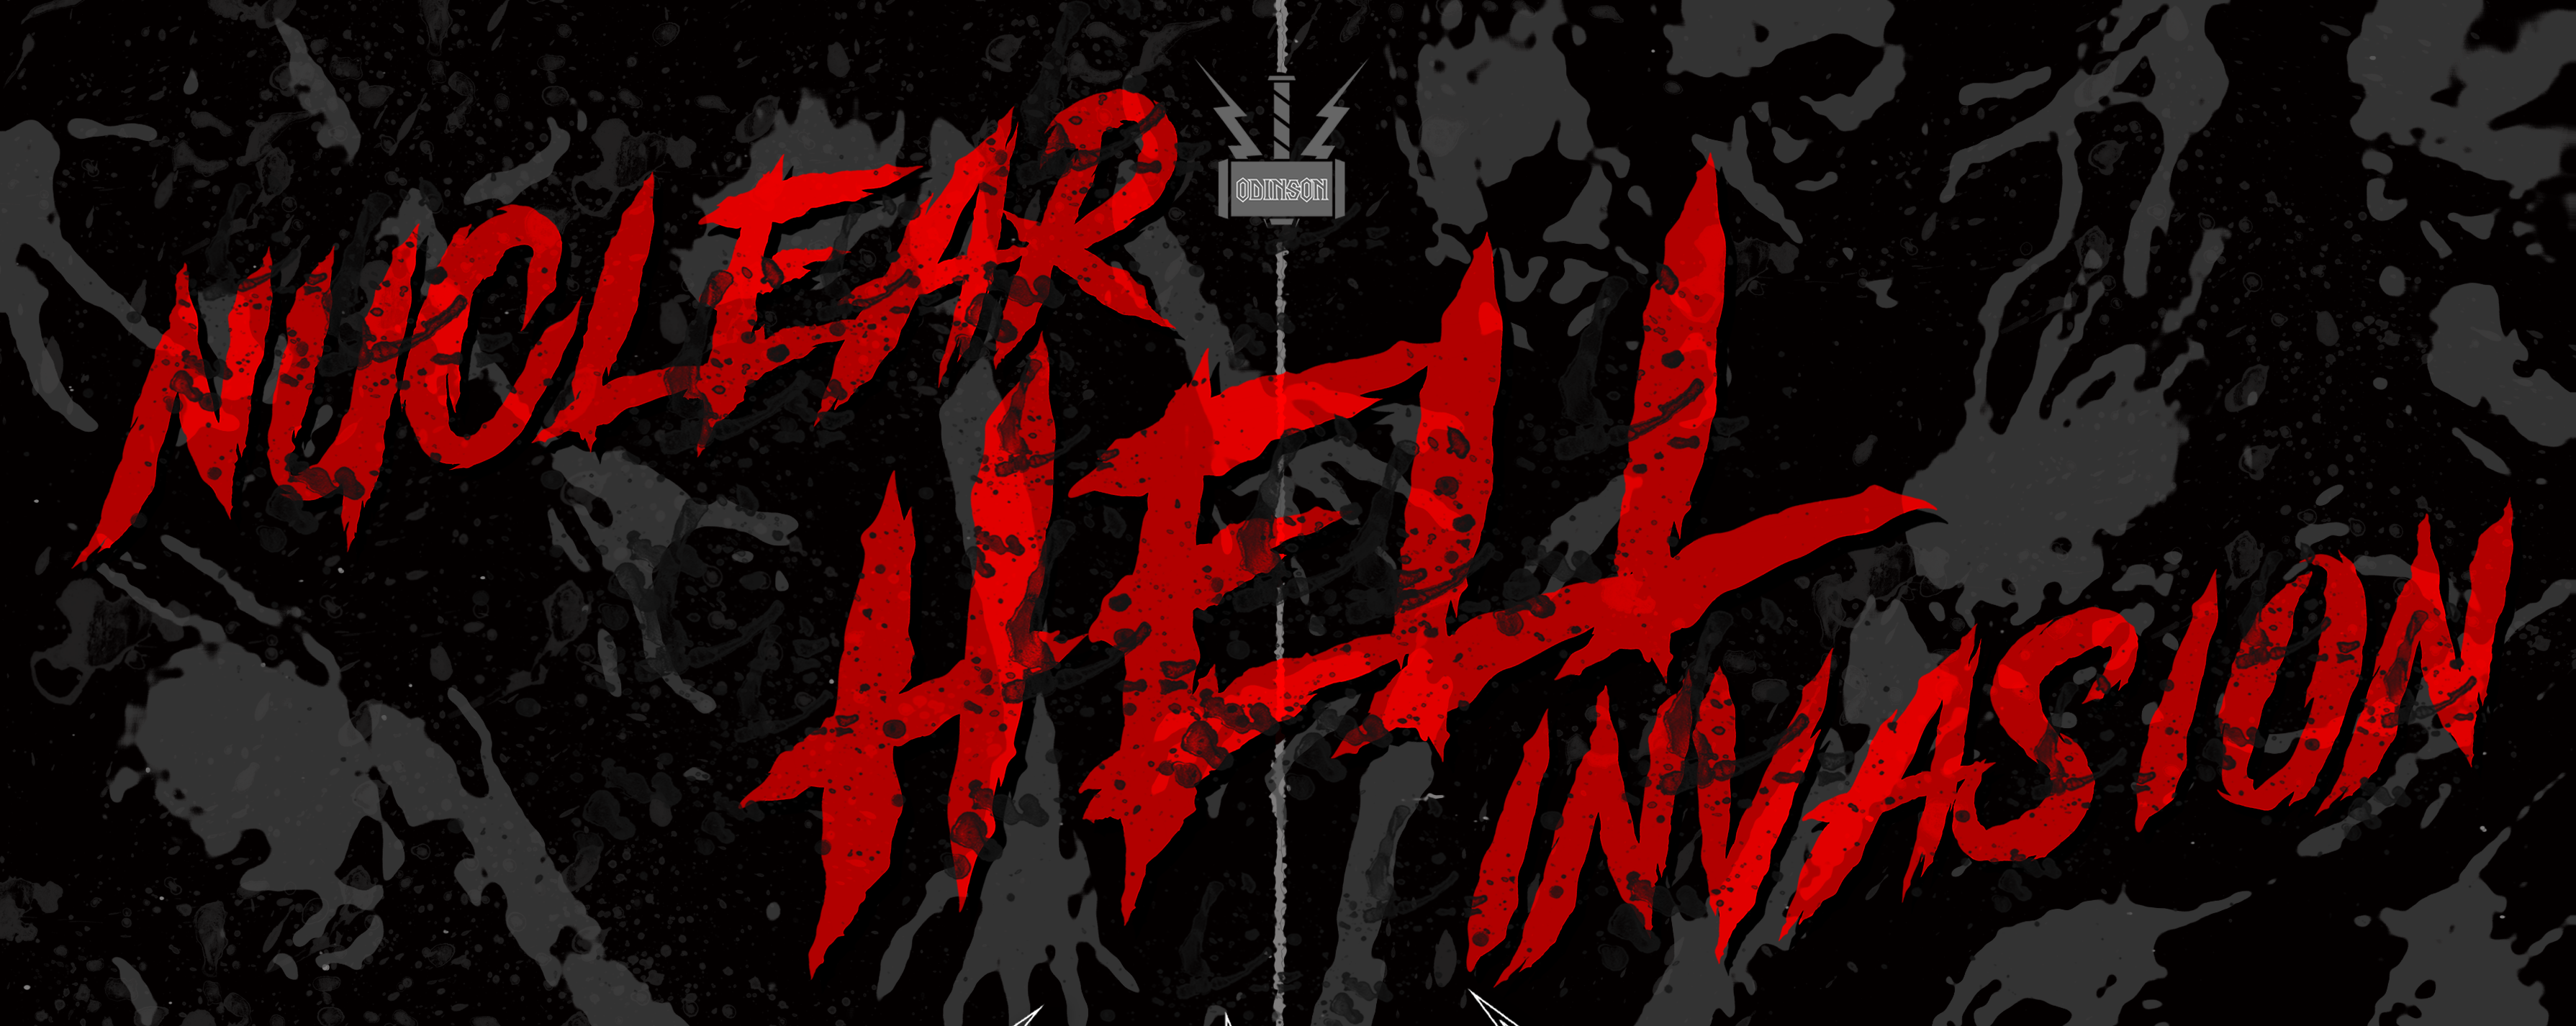 Nuclear Hell Invasion